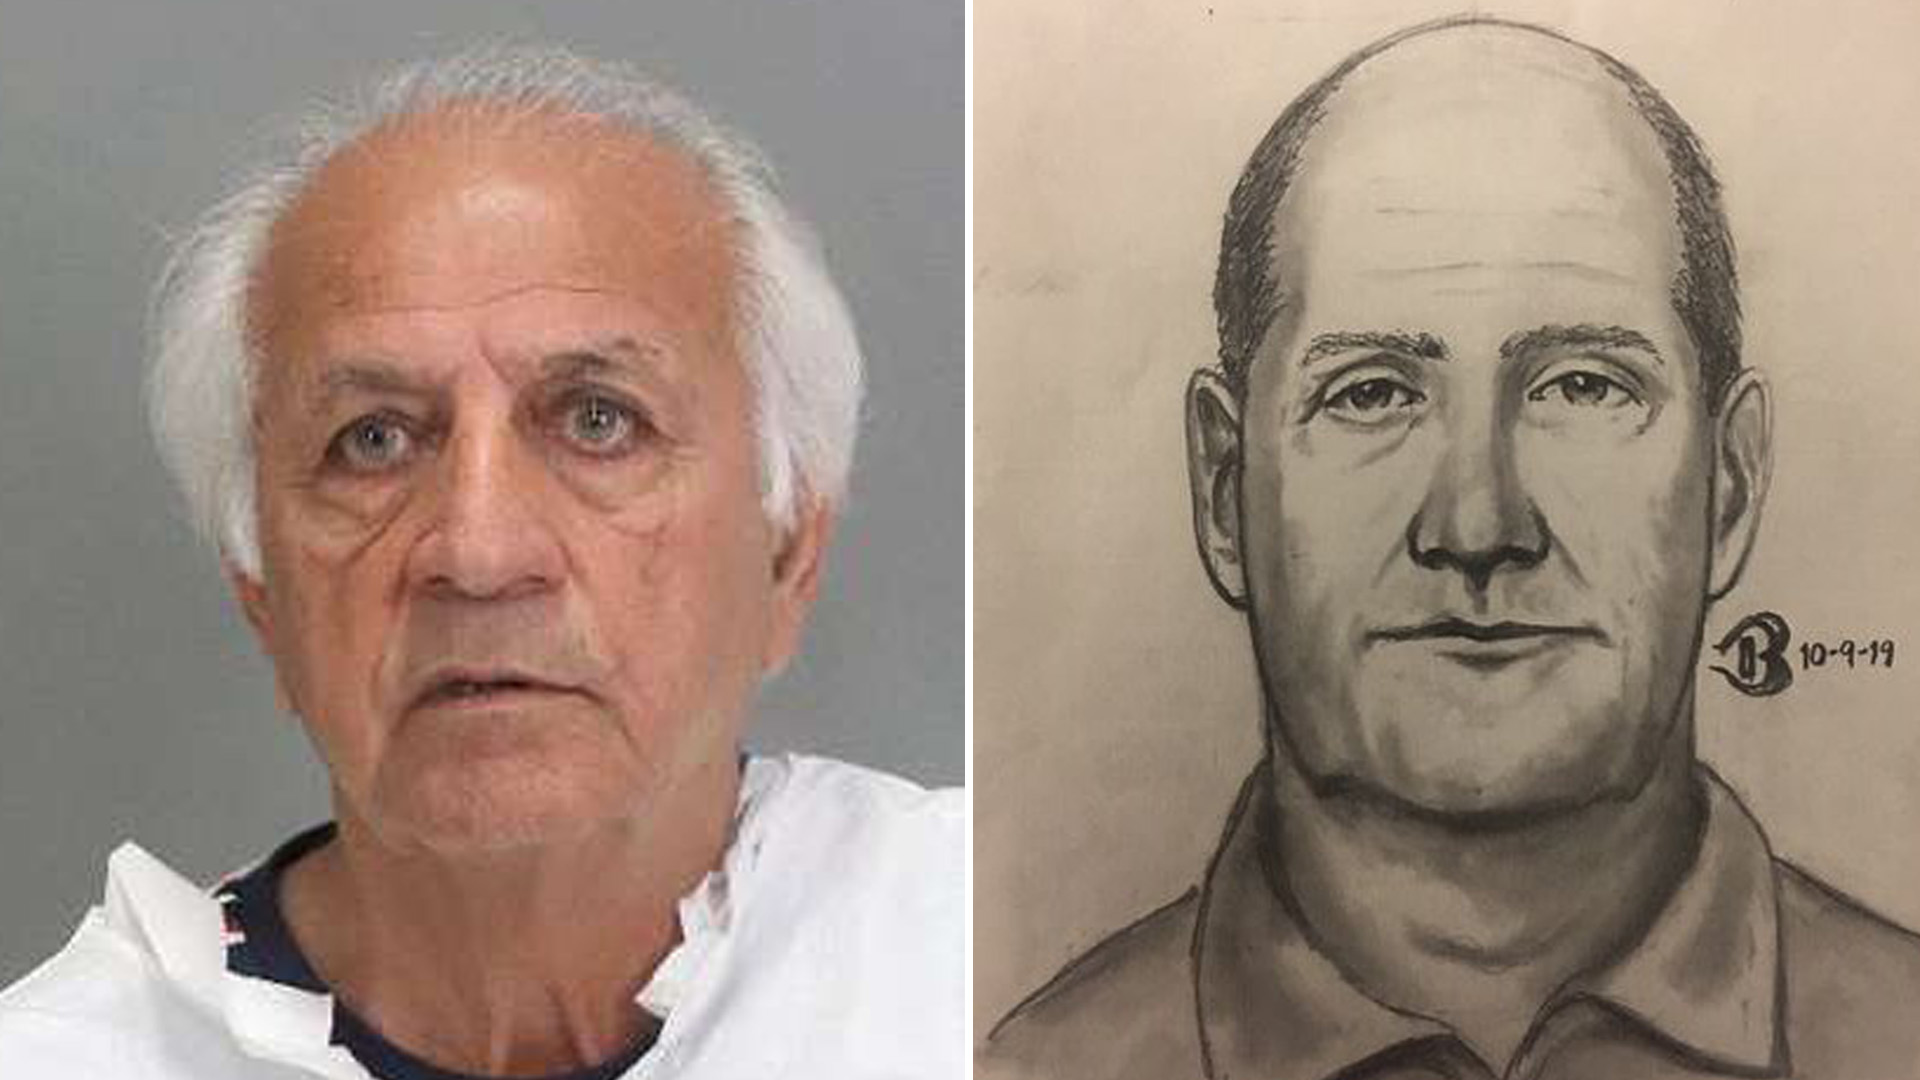 A booking photo and sketch of Ali Mohammad Lajmiri, 76, released by the San Jose Police Department on Nov. 14, 2019.